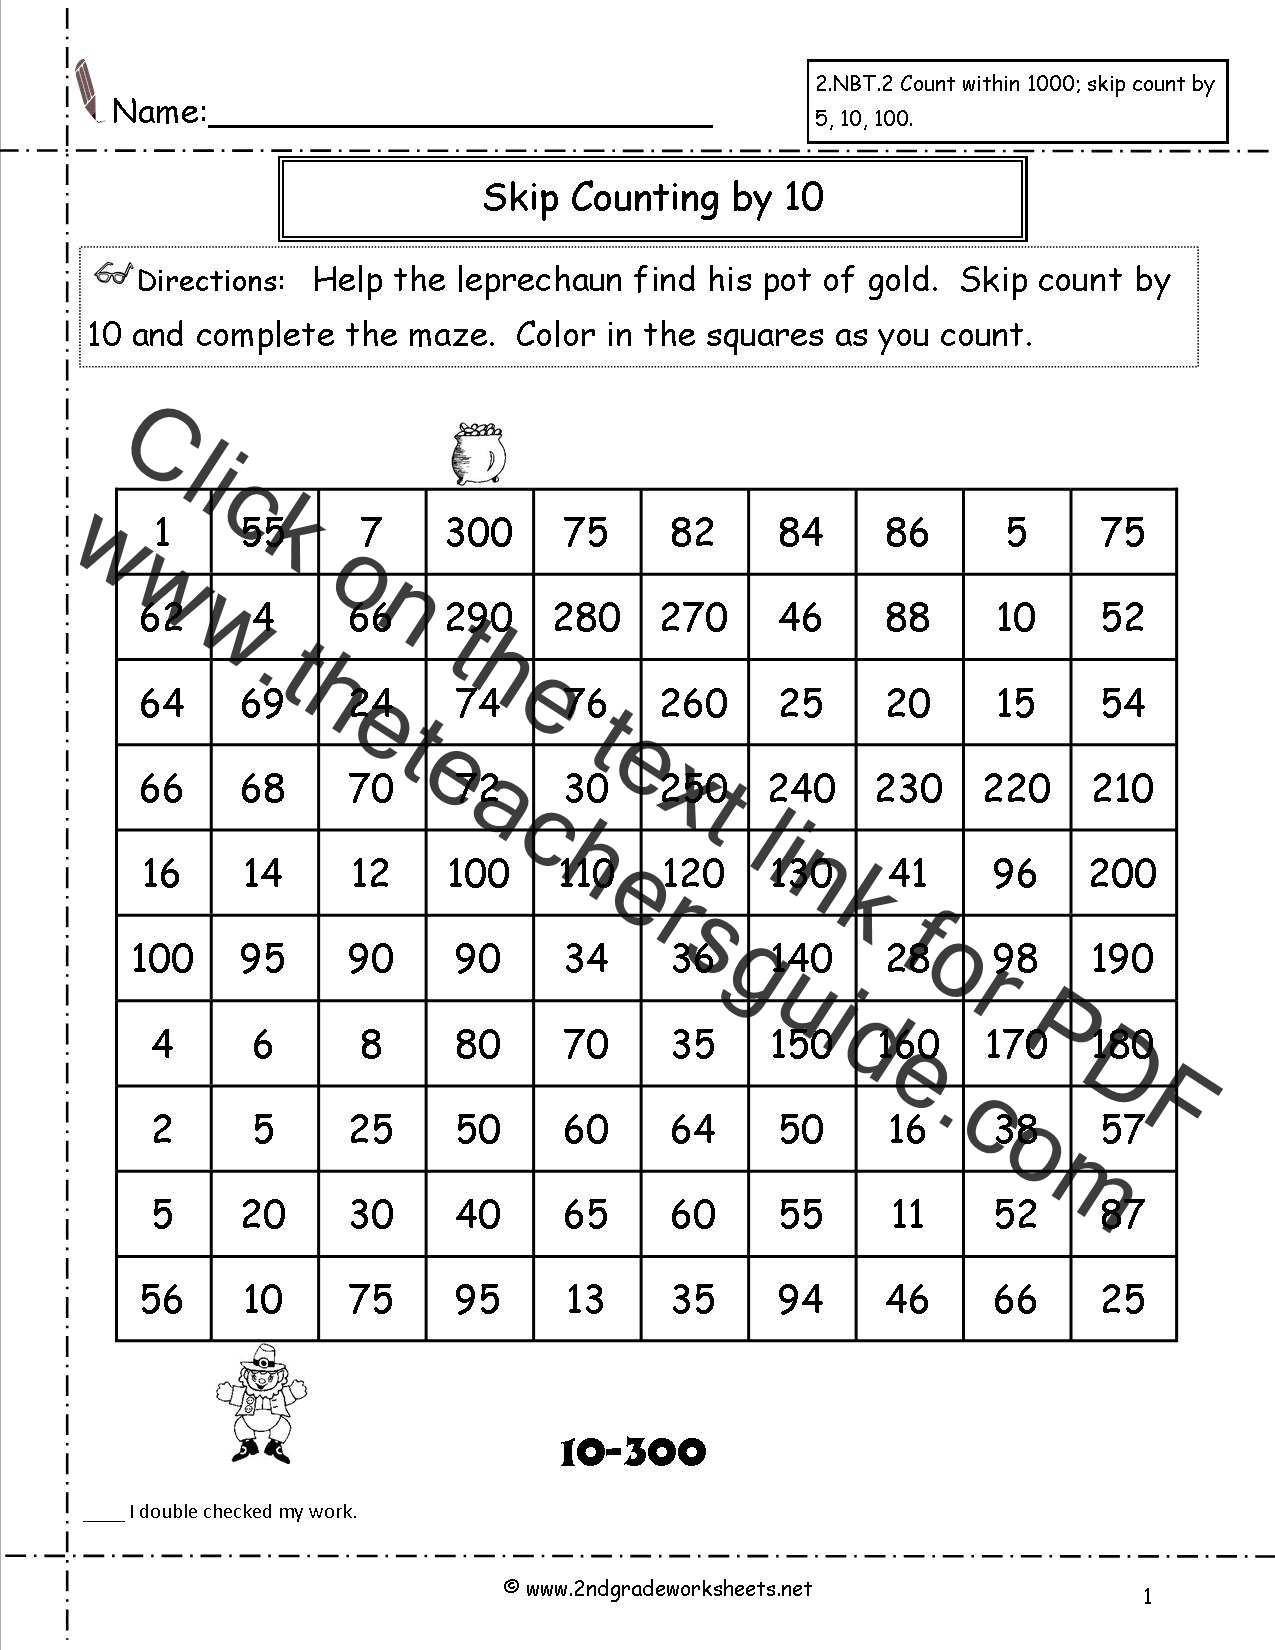 Worksheet Printable Skip Counting Worksheets free skip counting worksheets count by 10 maze